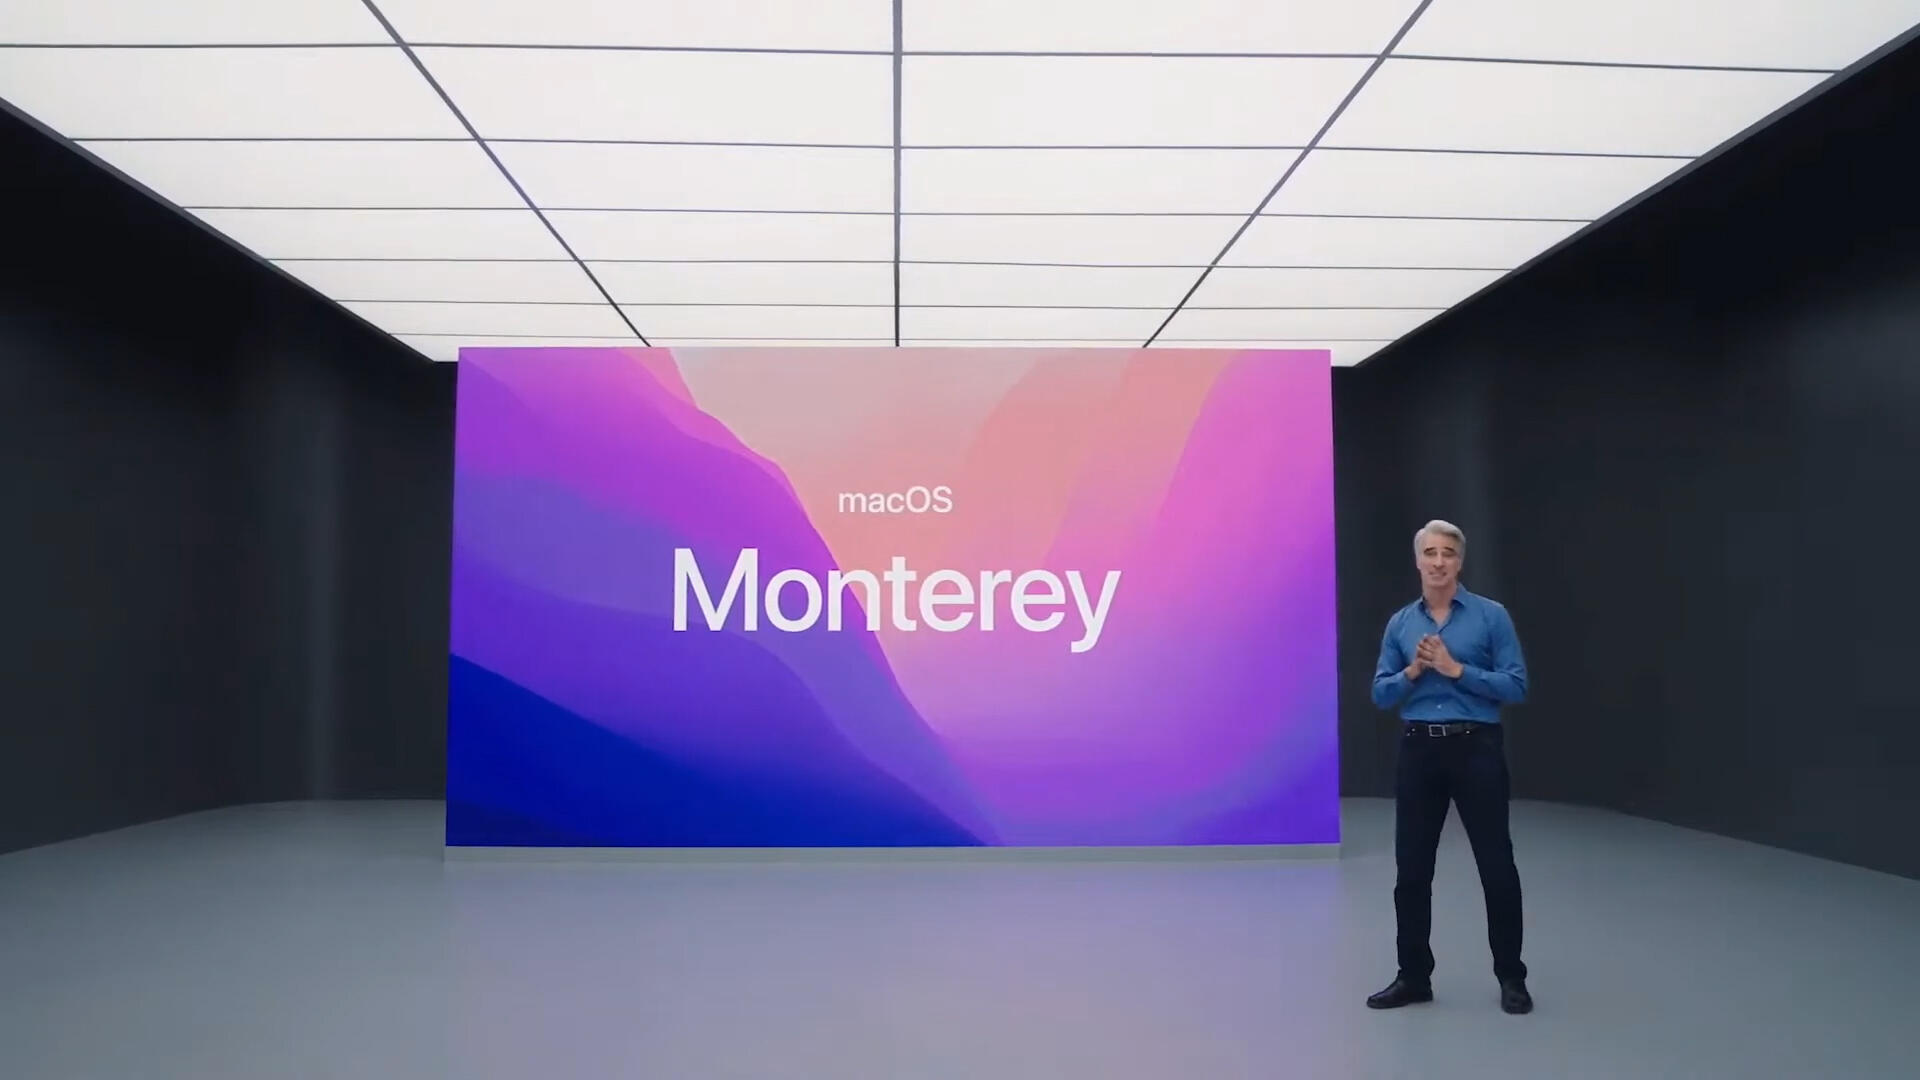 Video: Apple reveals MacOS Monterey with Universal Control